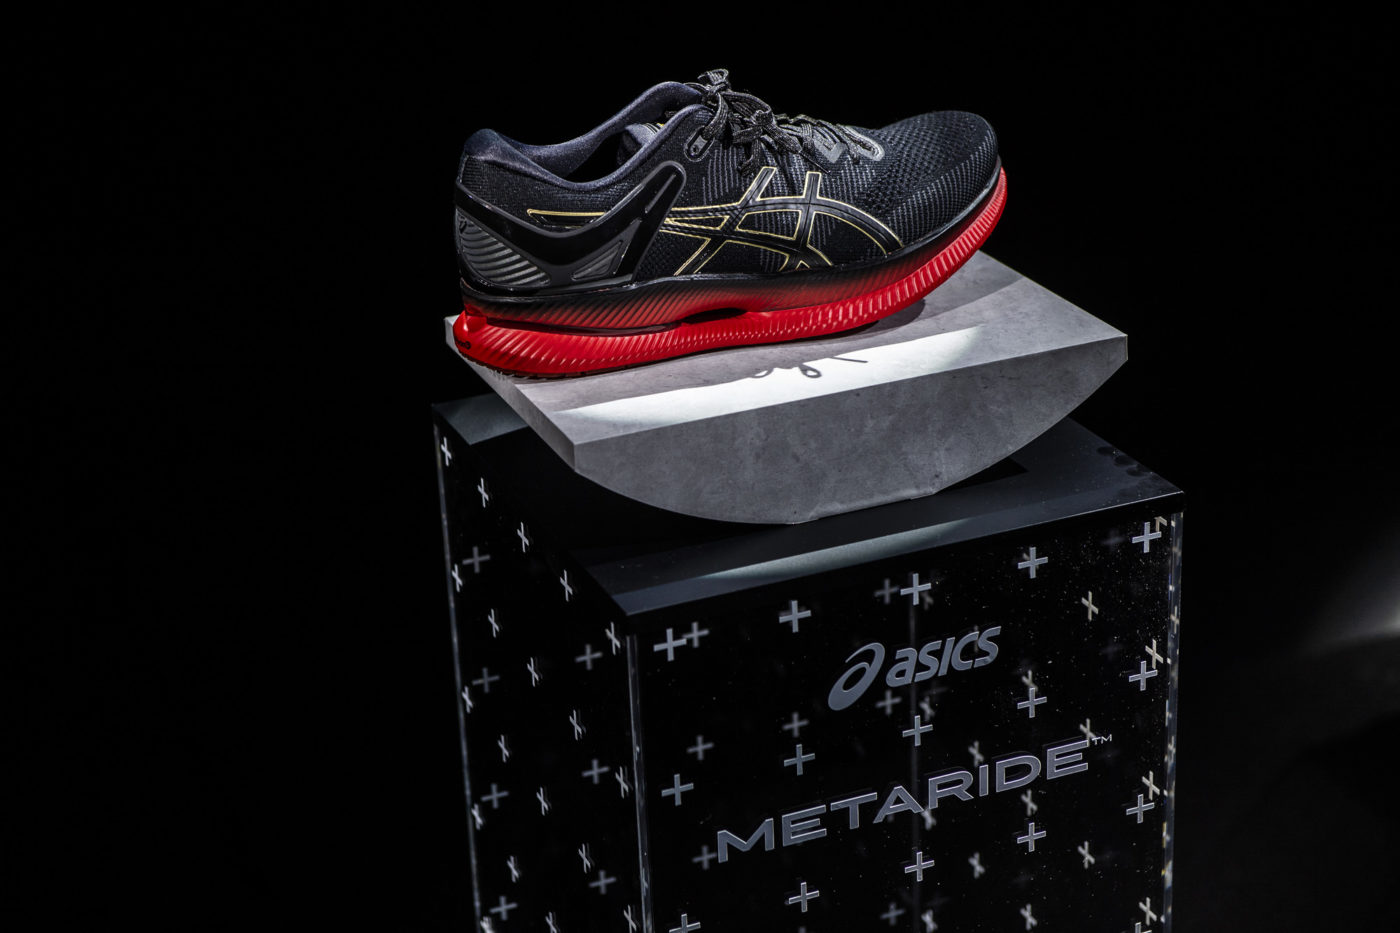 chaussures-course-a-pied-asics-metaride-3